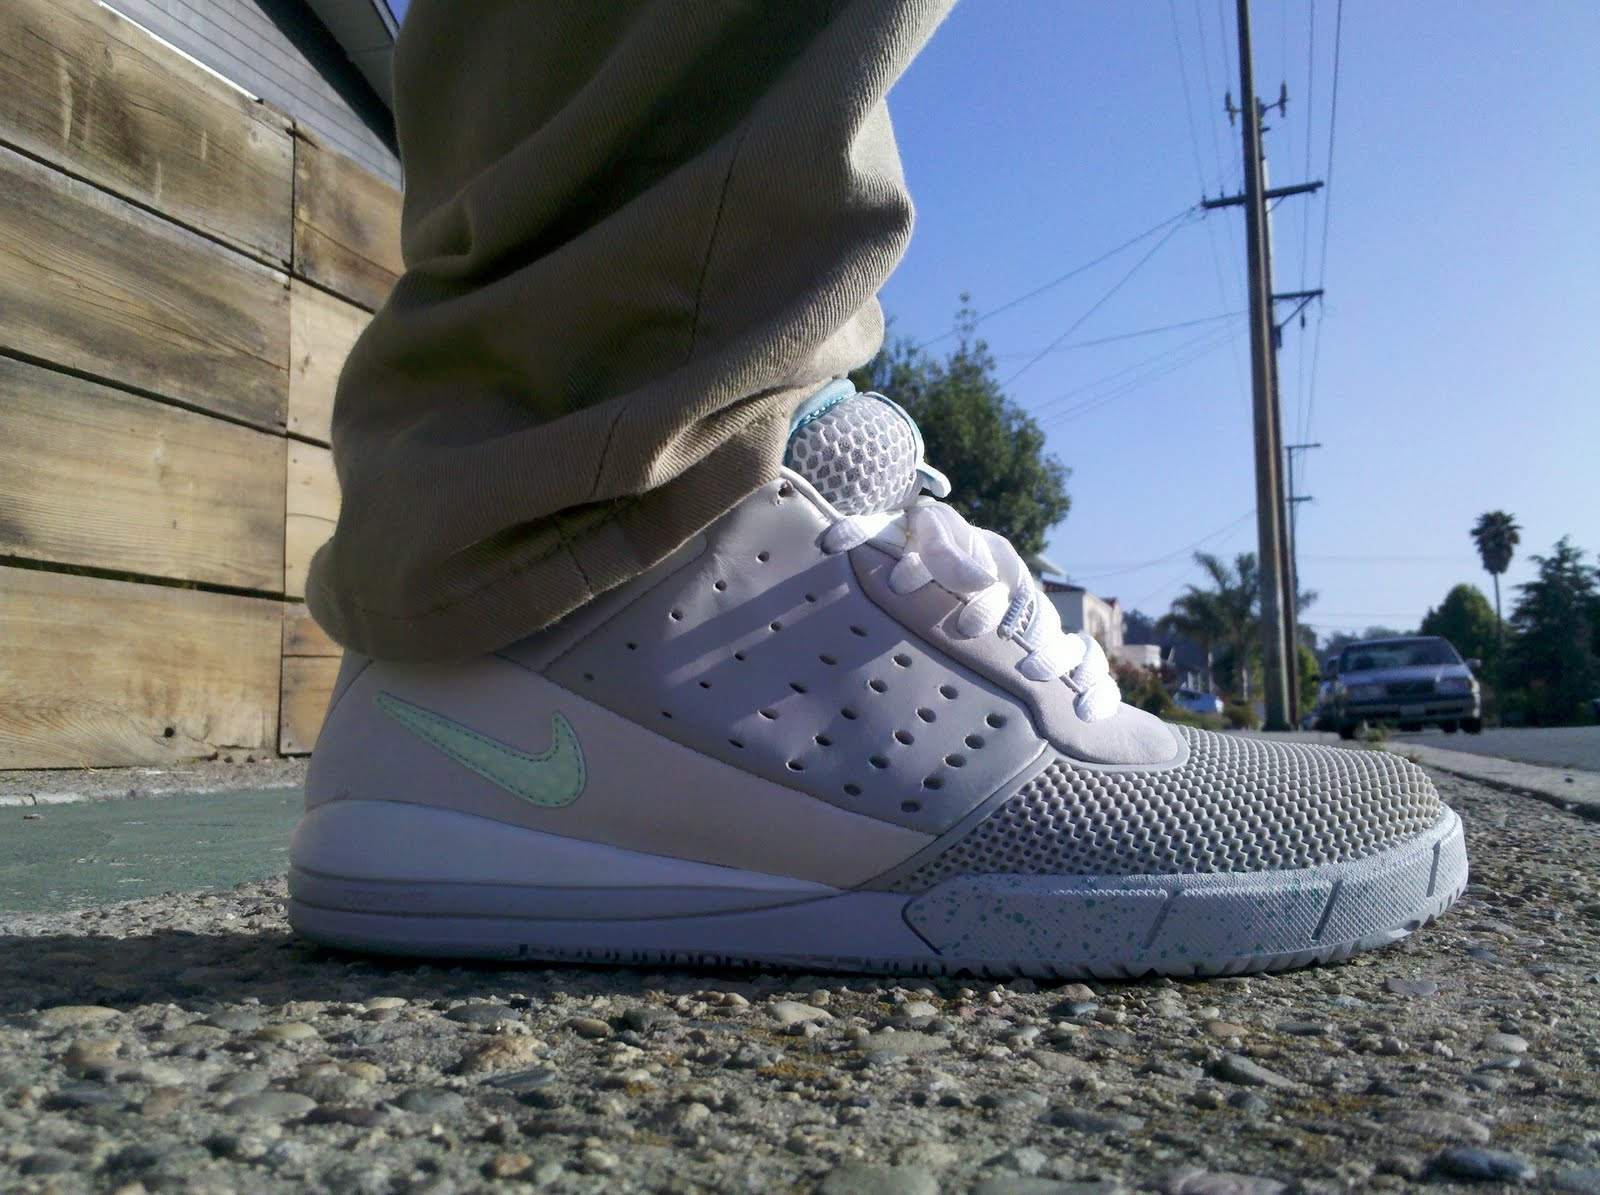 new product 8fe91 540cf SNEAKER REVIEW - ZOOM TRE A.D.